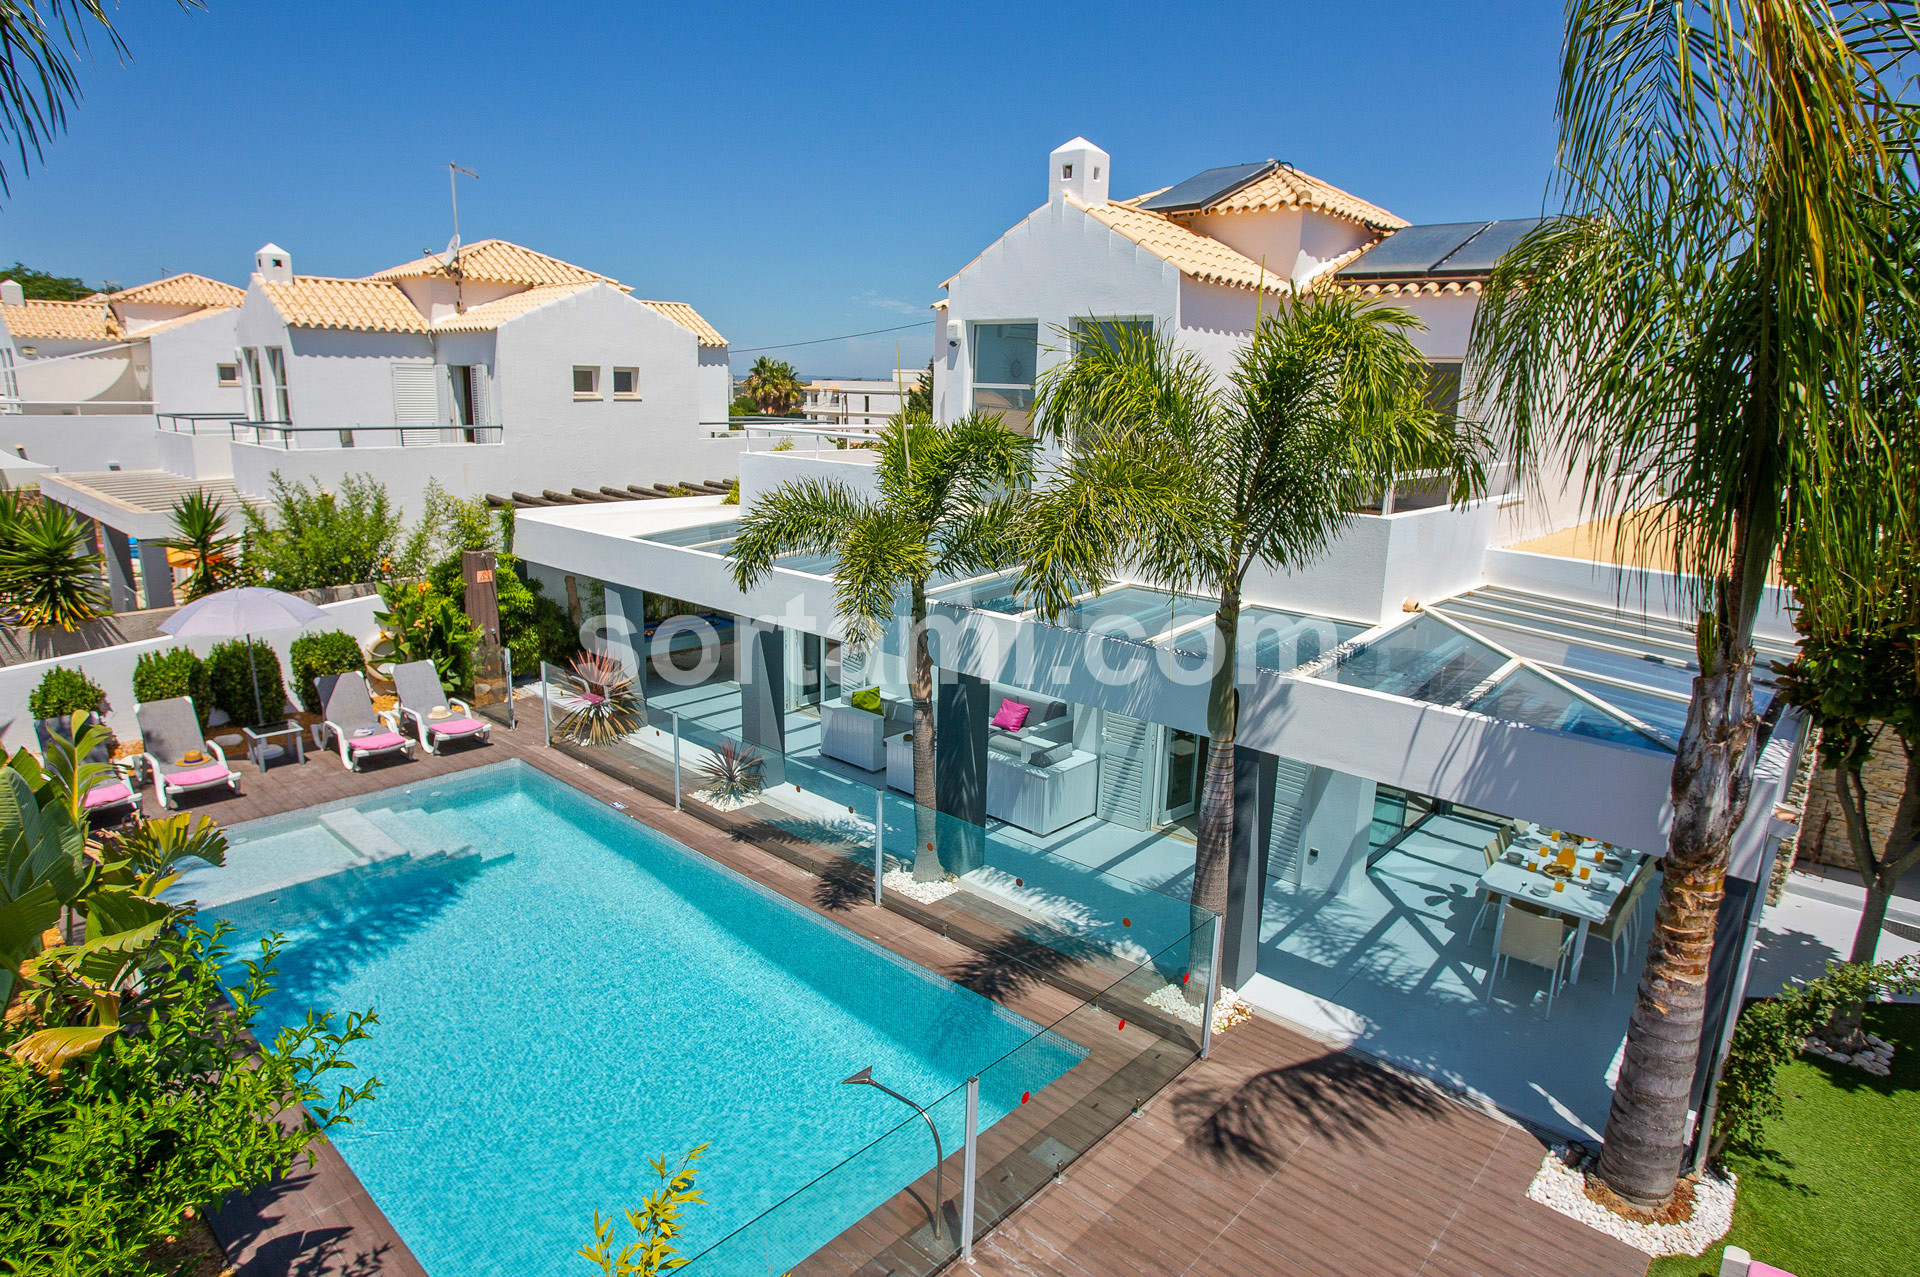 Detached house T4 Algarve, Albufeira